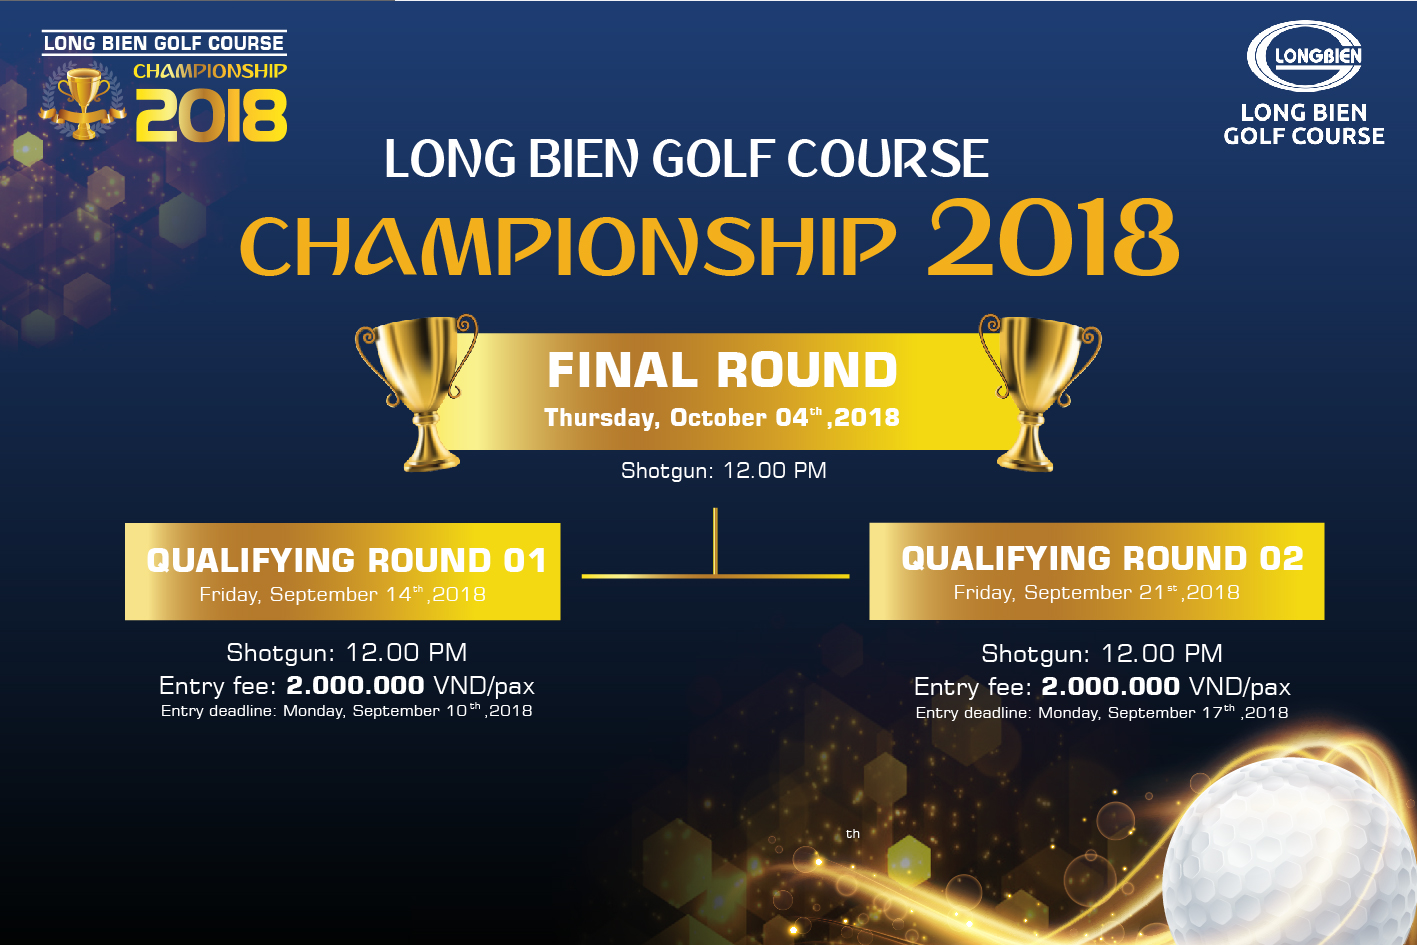 LONG BIEN GOLF COURSE CHAMPIONSHIP 2018